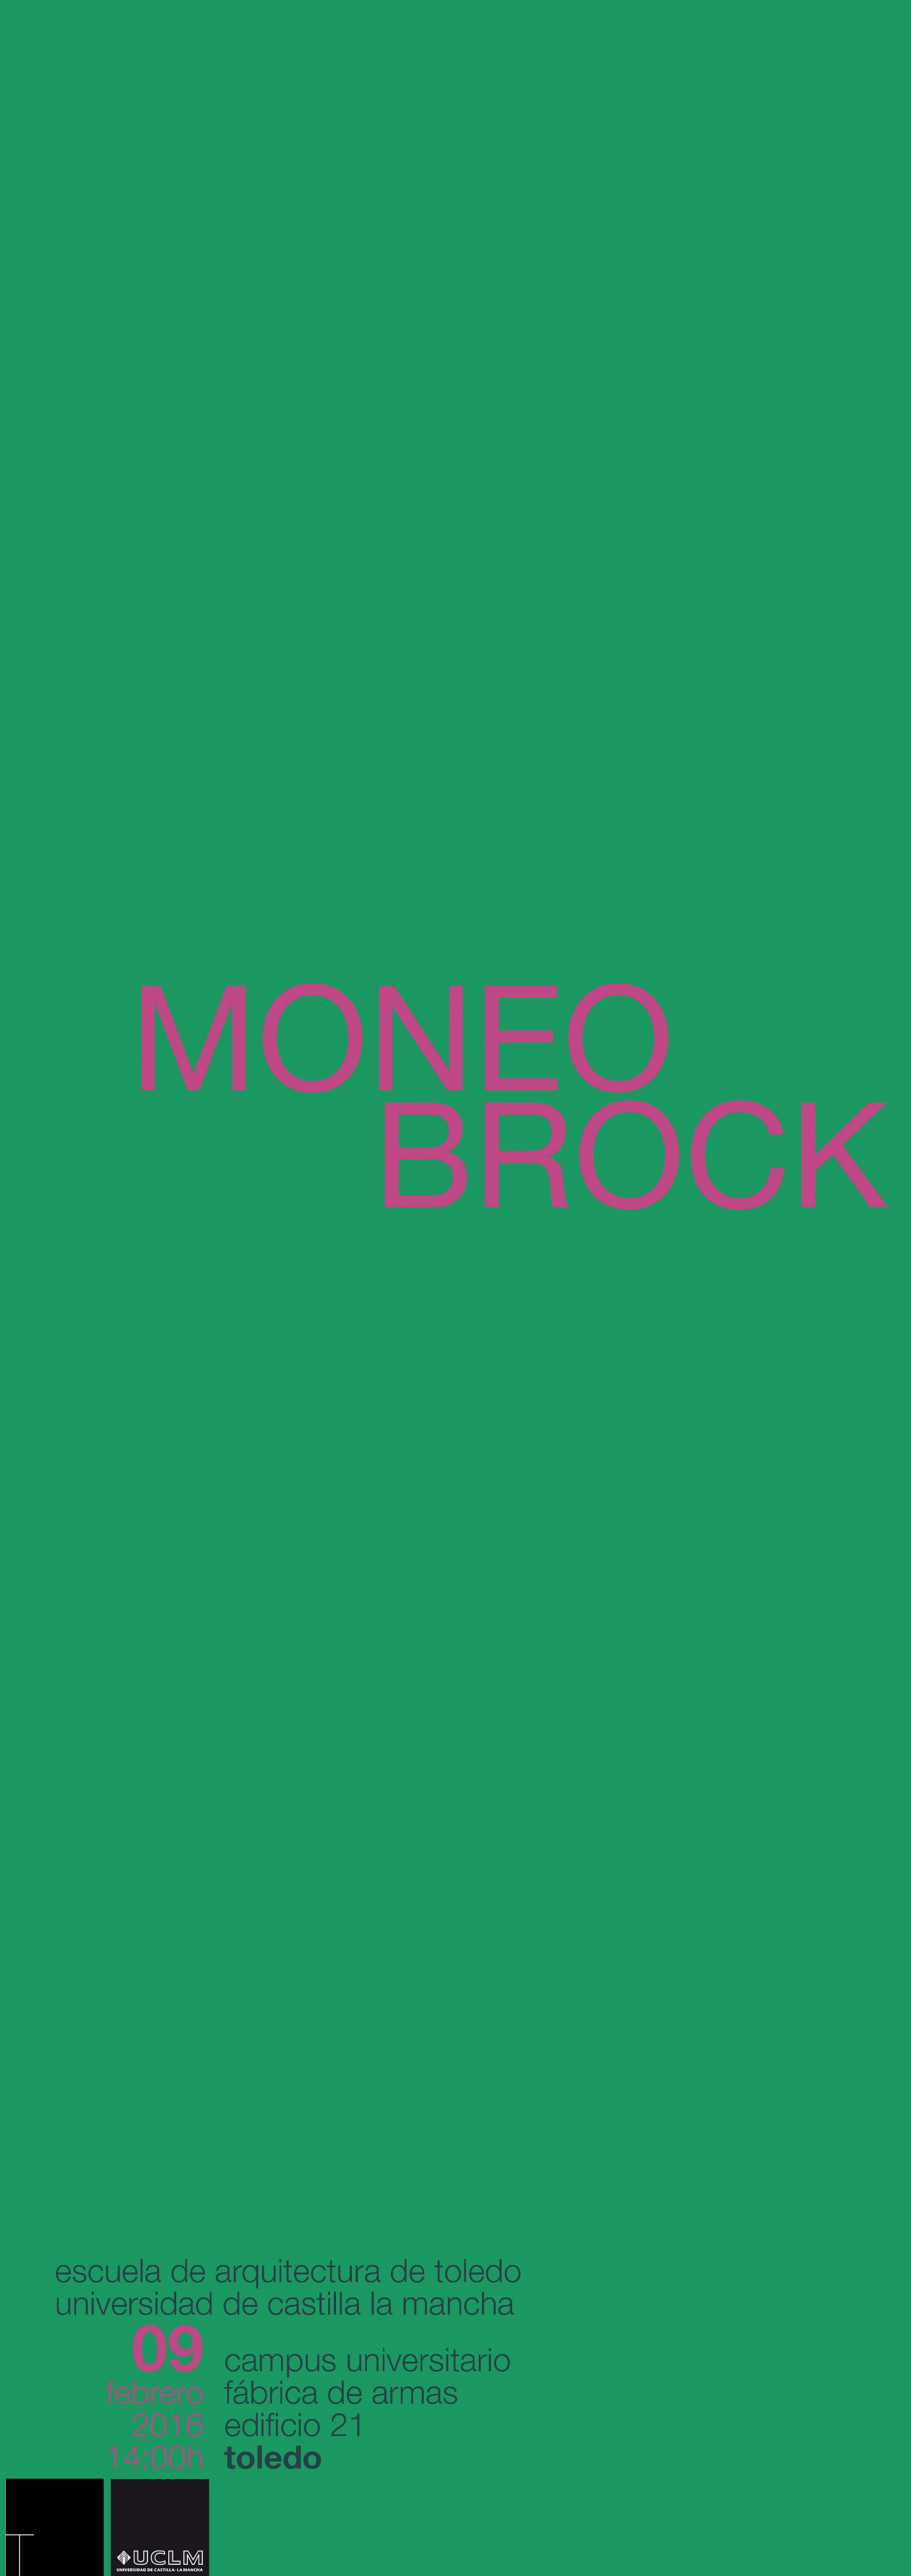 Moneo brock por bel n moneo delegaci n de alumnos de for Moneo brock